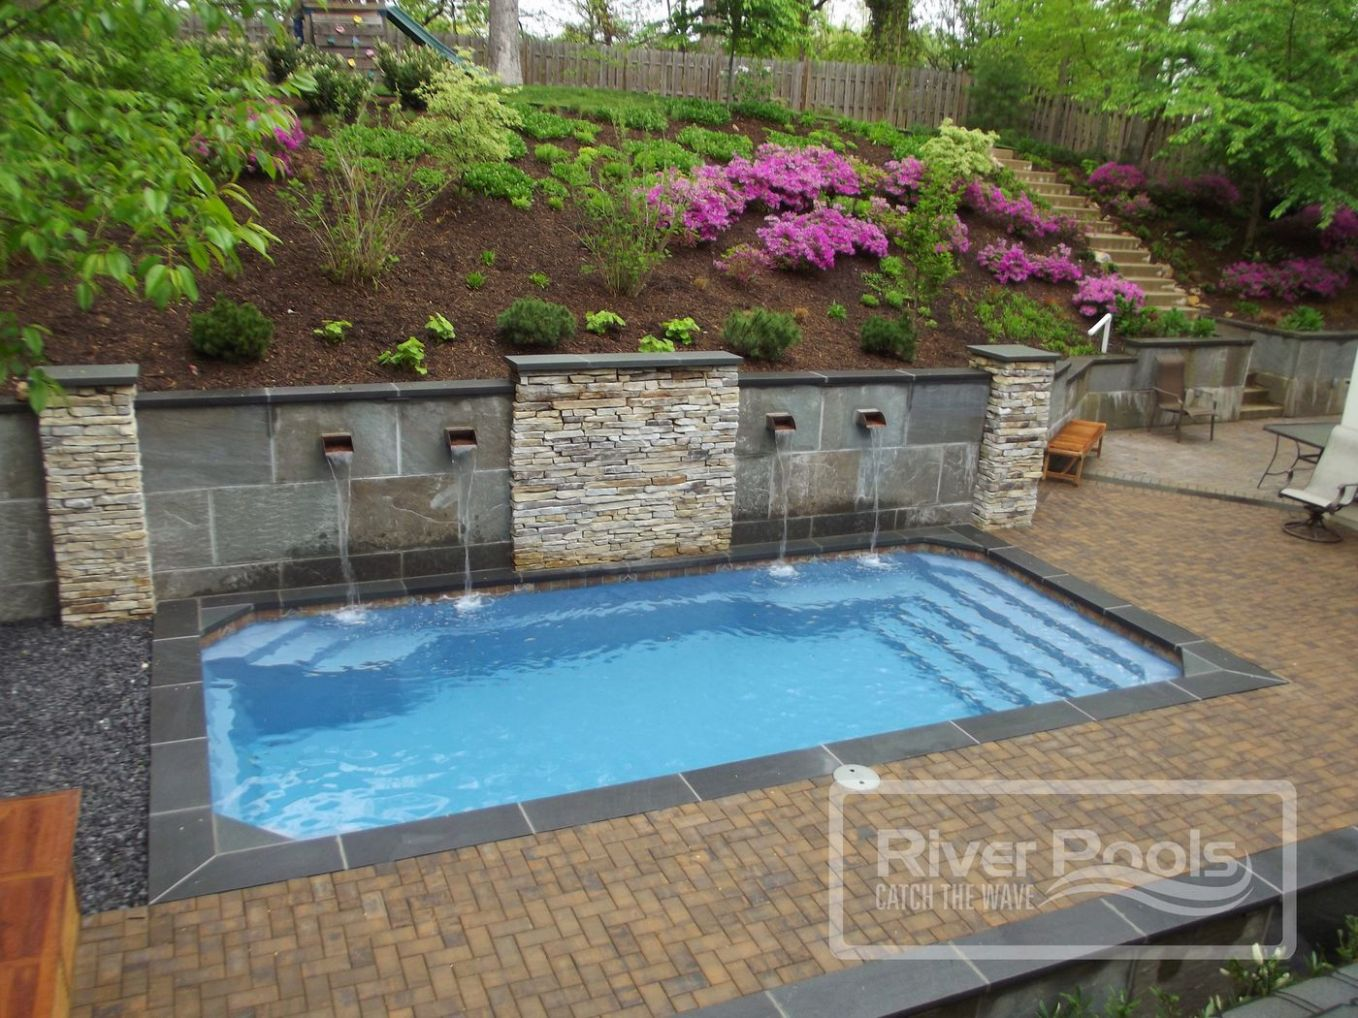 Pool Retaining Walls for Sloped Yards: Cost, Materials, and More - pool ideas with retaining wall